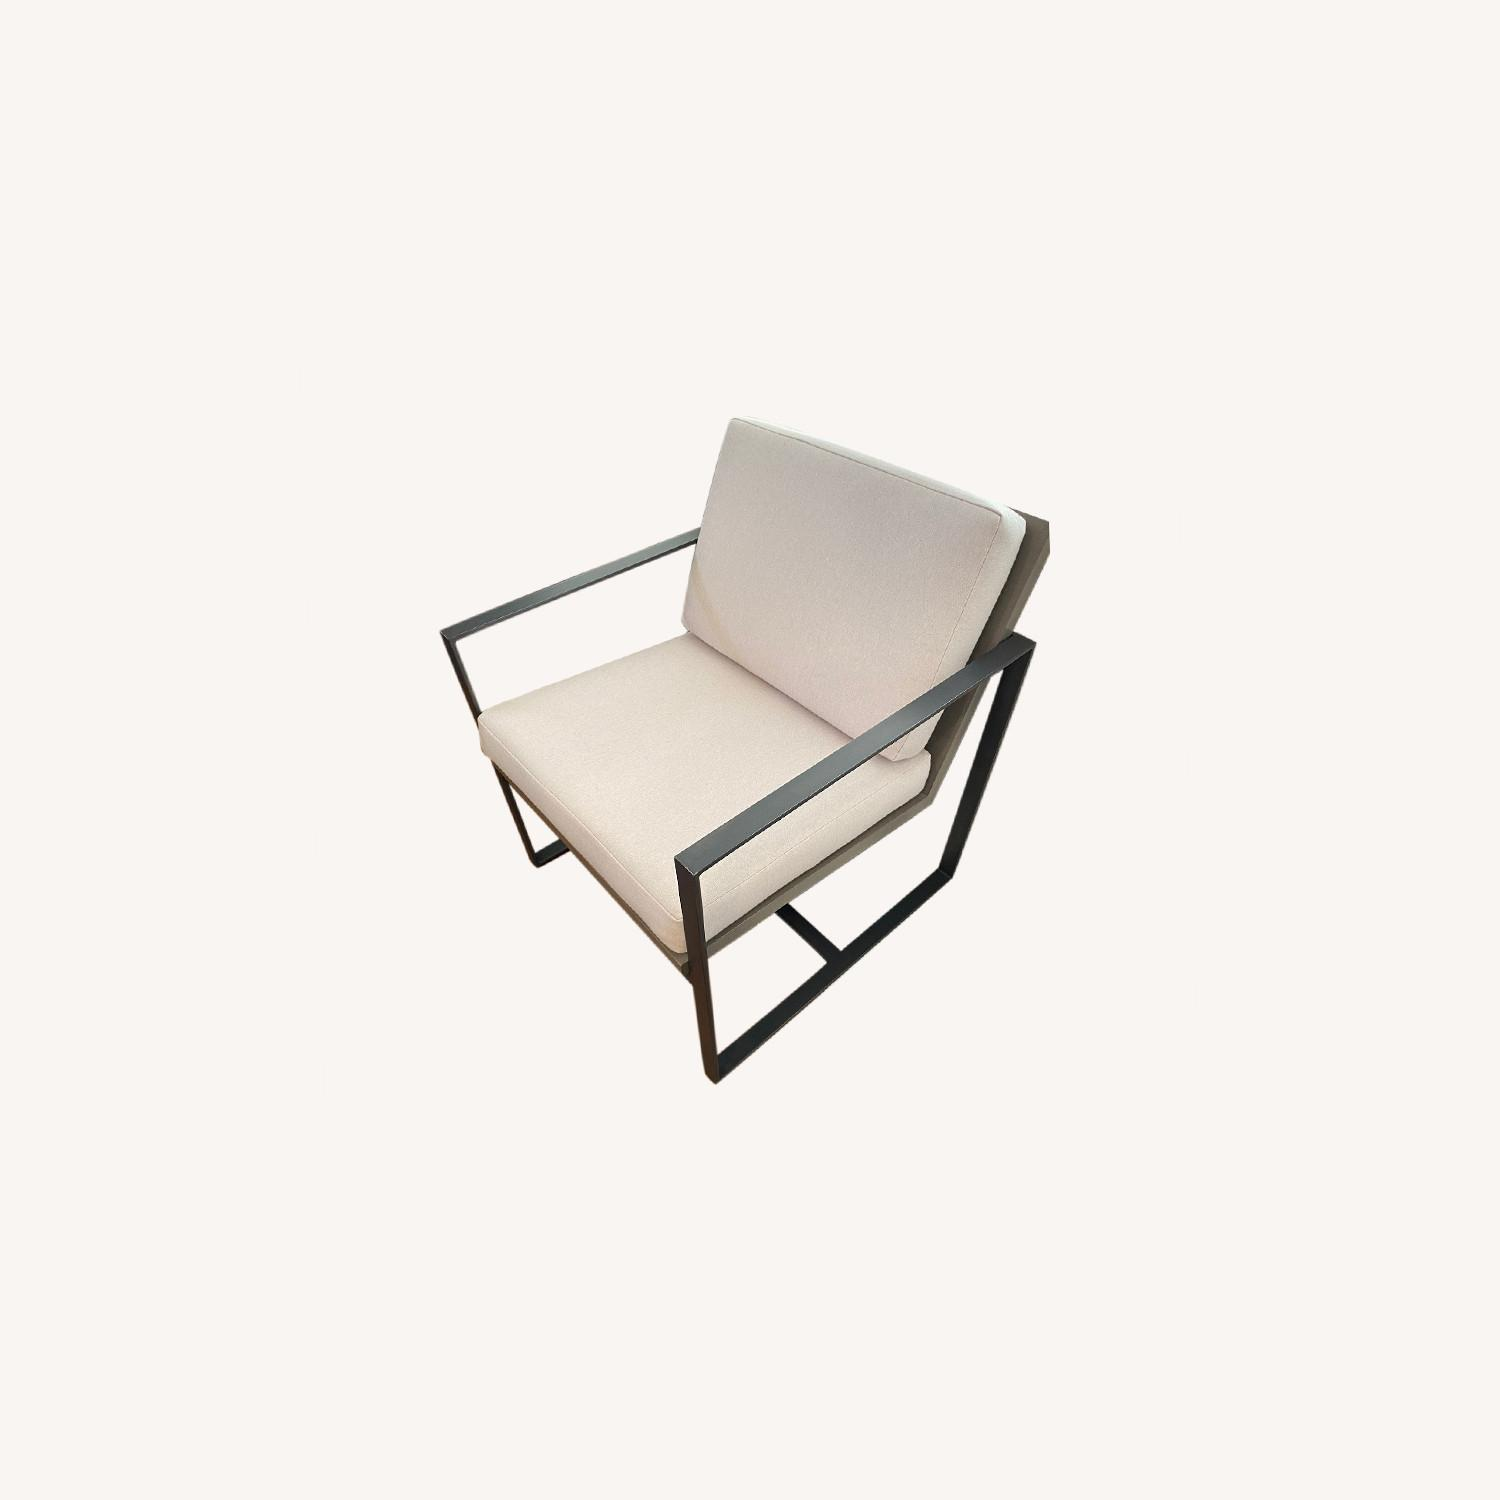 Restoration Hardware Occasional Chair - image-0